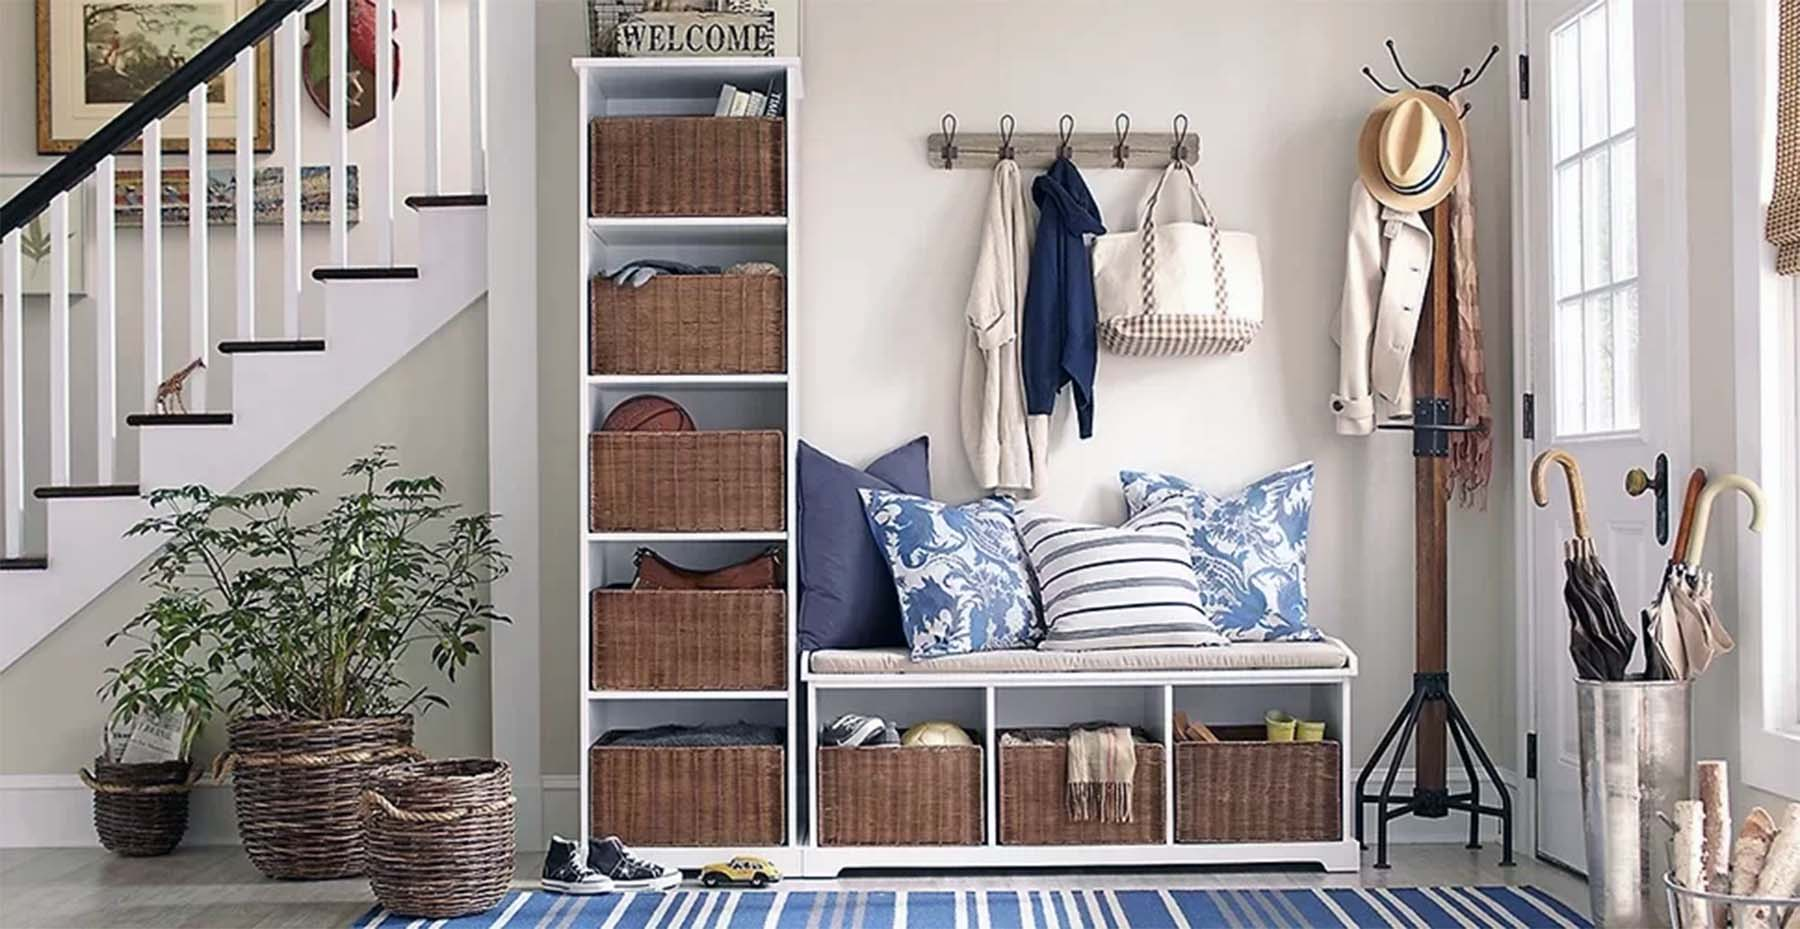 small foyer design ideas cubbies with bench seat and coat hanger plants and blue striped area rug